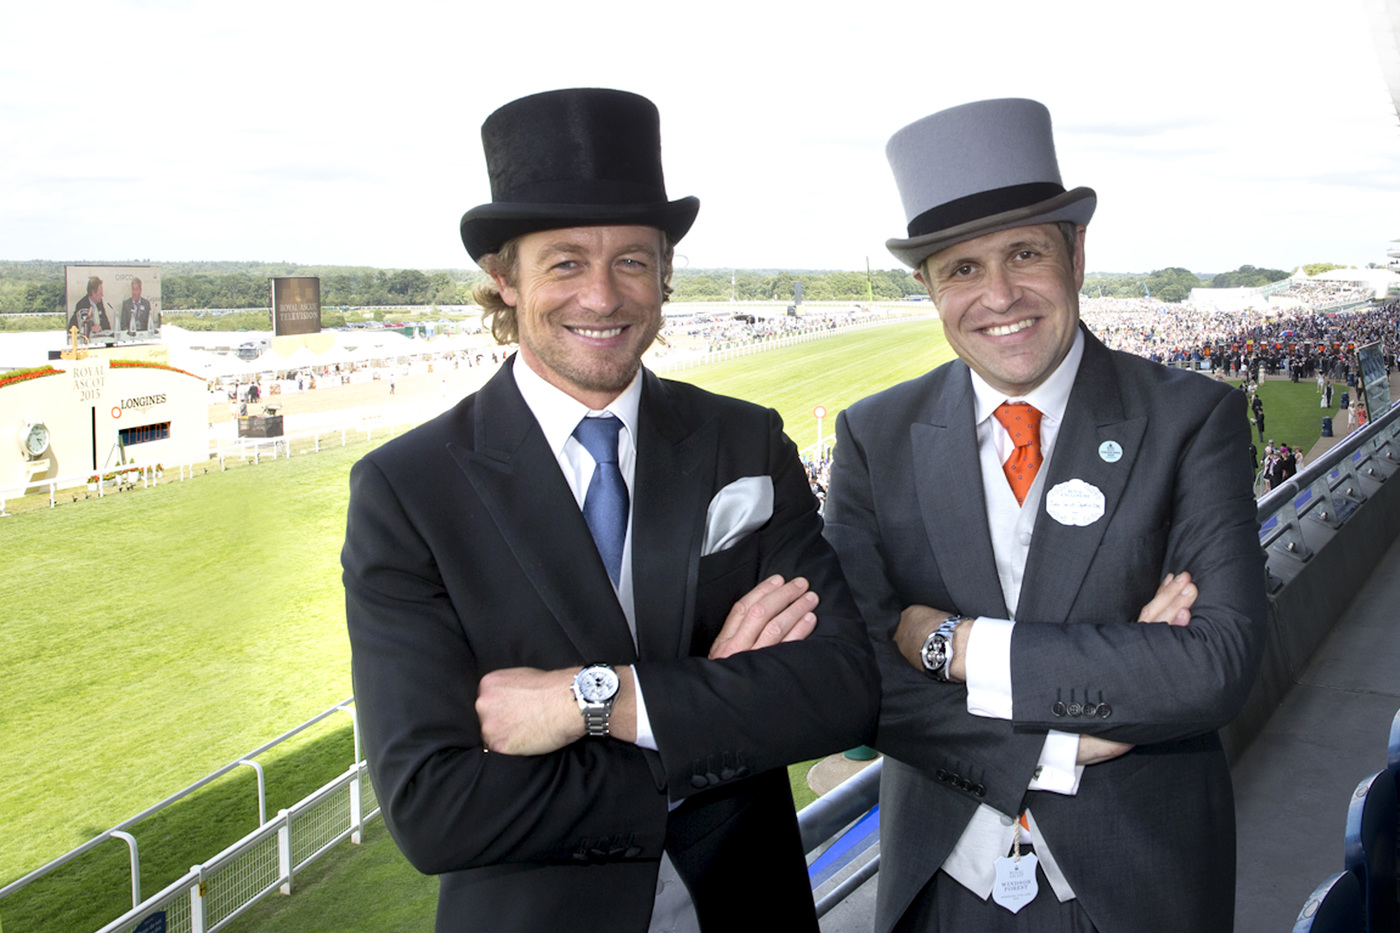 Longines Flat Racing Event: Longines Ambassador of Elegance Simon Baker at Royal Ascot for a very British Day at the Races  7